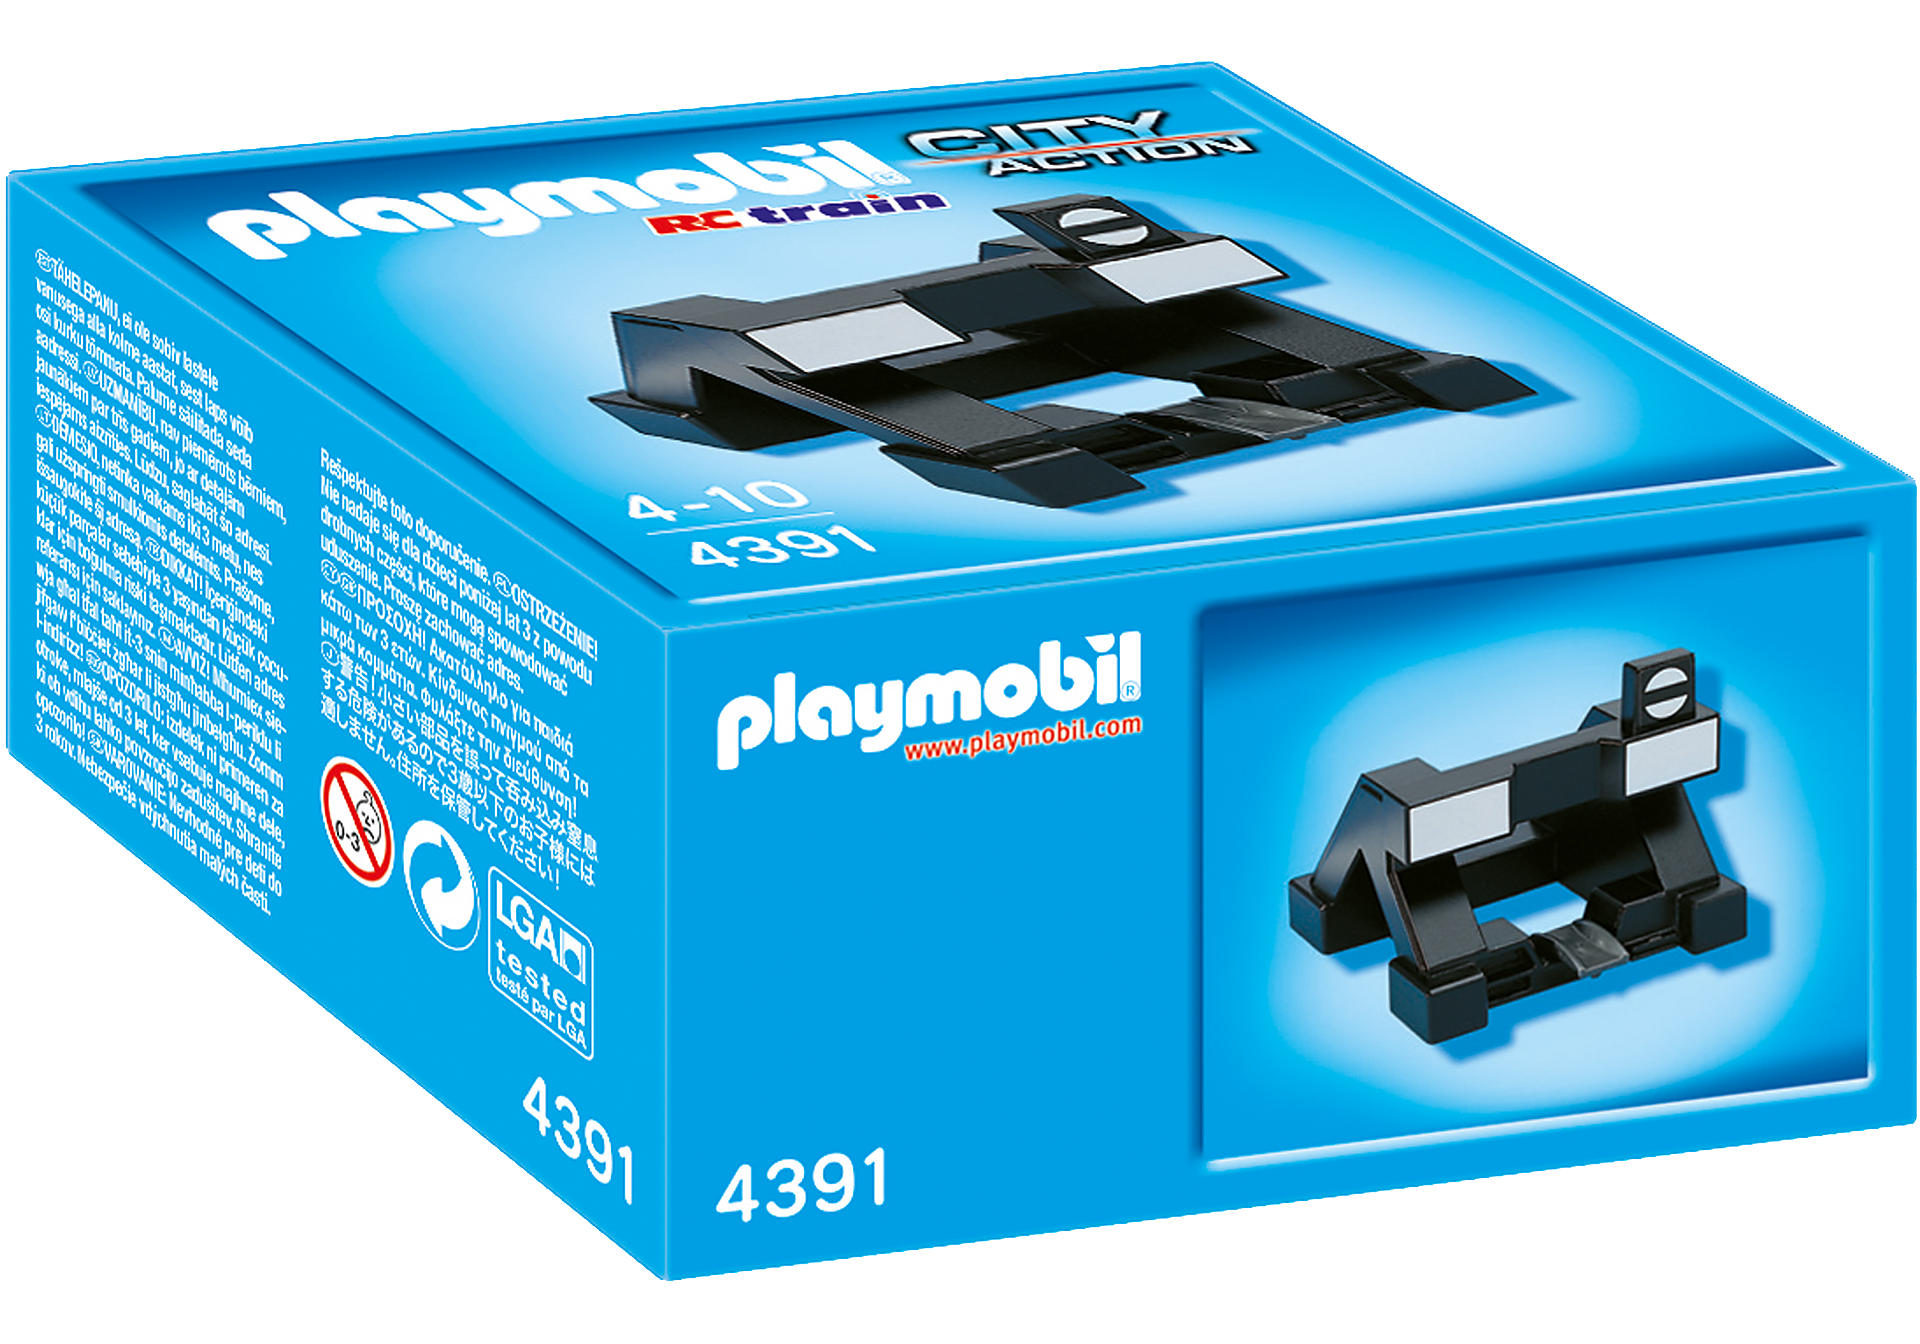 http://media.playmobil.com/i/playmobil/4391_product_box_front/Stootblok